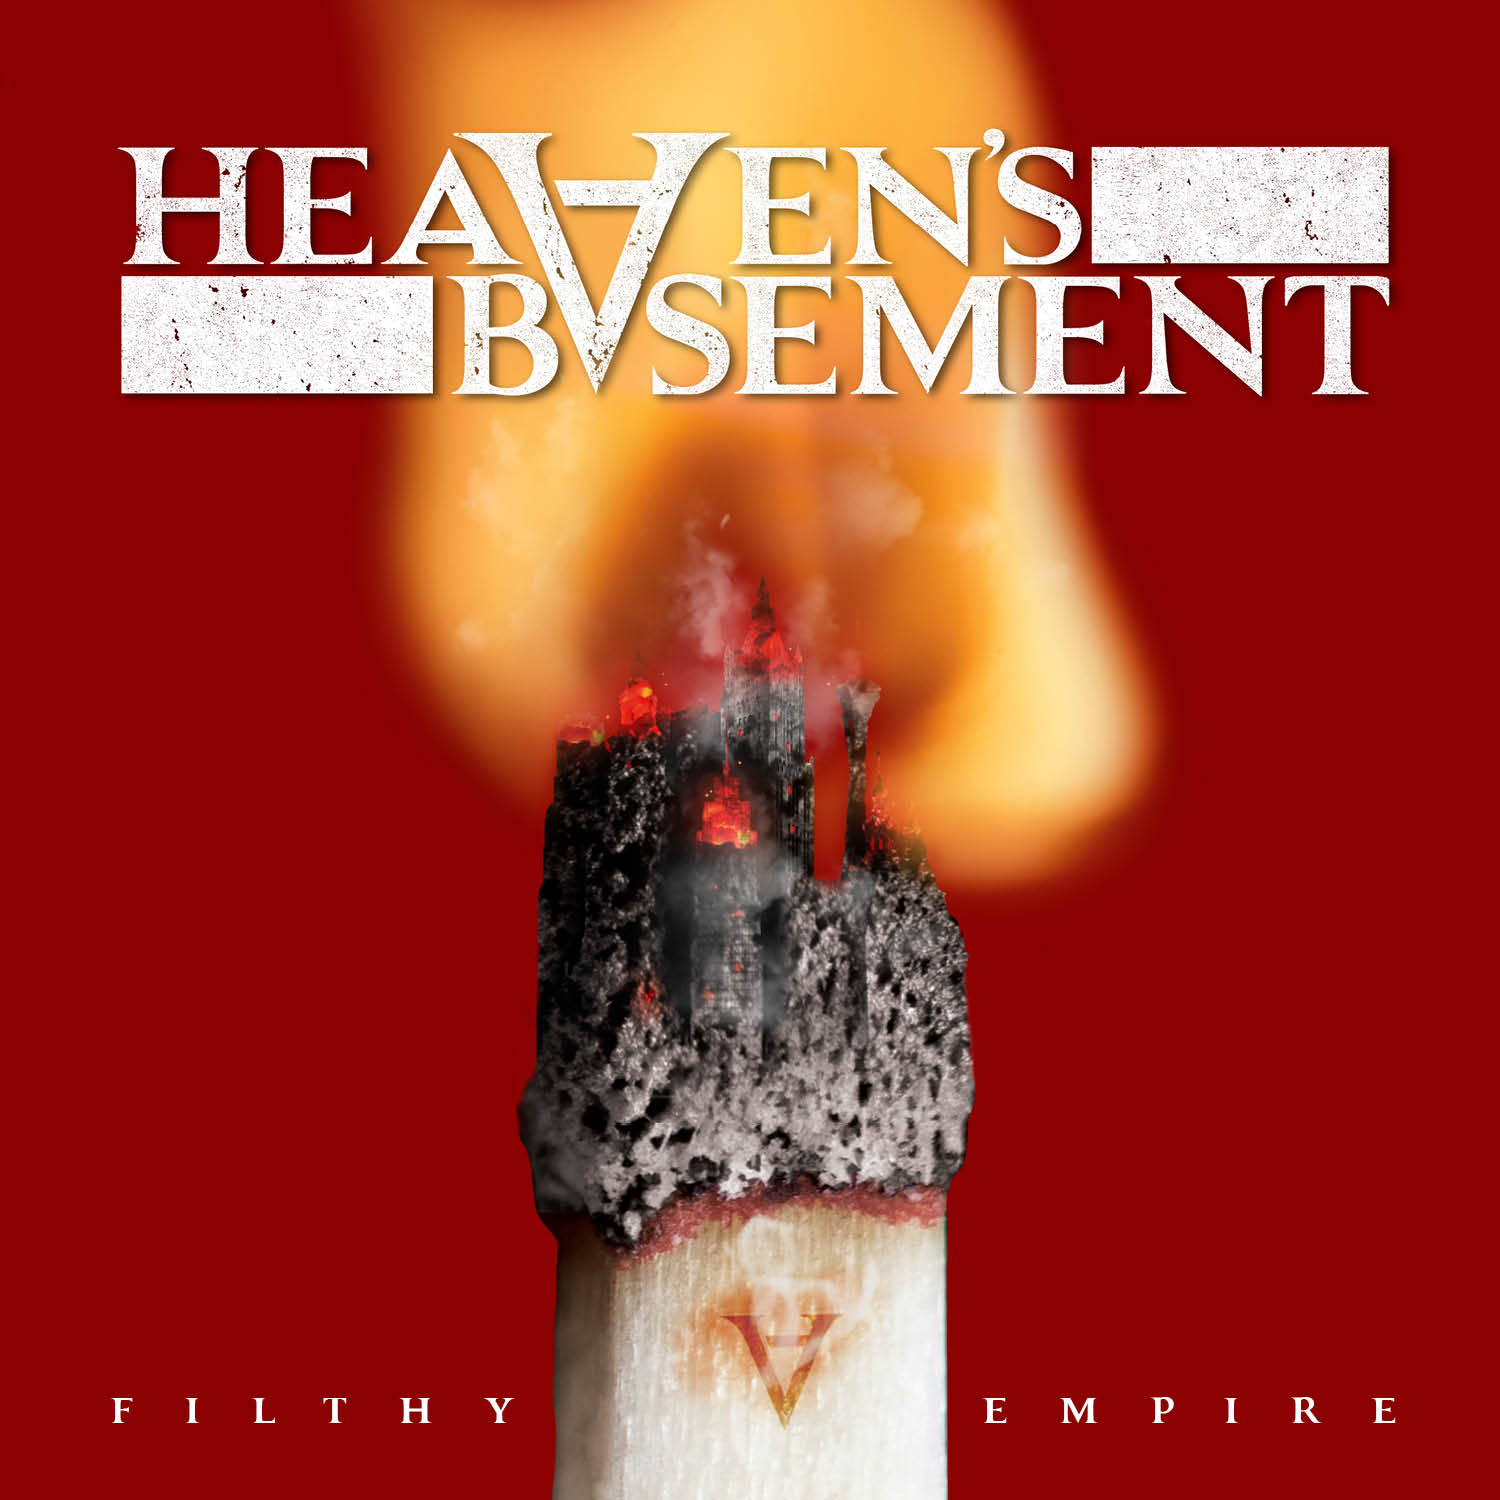 Heaven's Basement - Filthy Empire, Special Edition